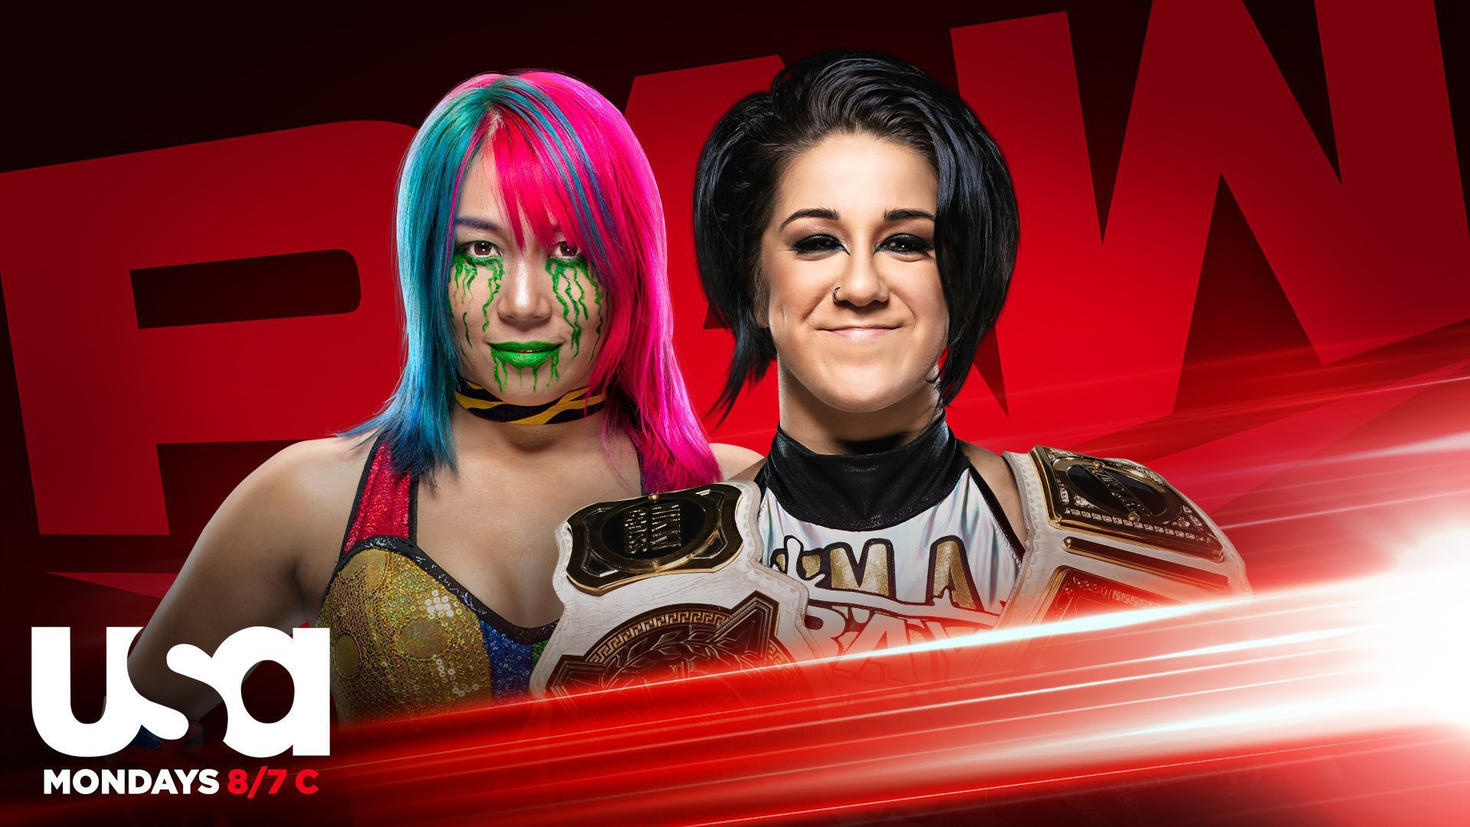 WWE Raw Preview (10/08/20): Randy Orton vs Kevin Owens; Bayley vs Asuka 2